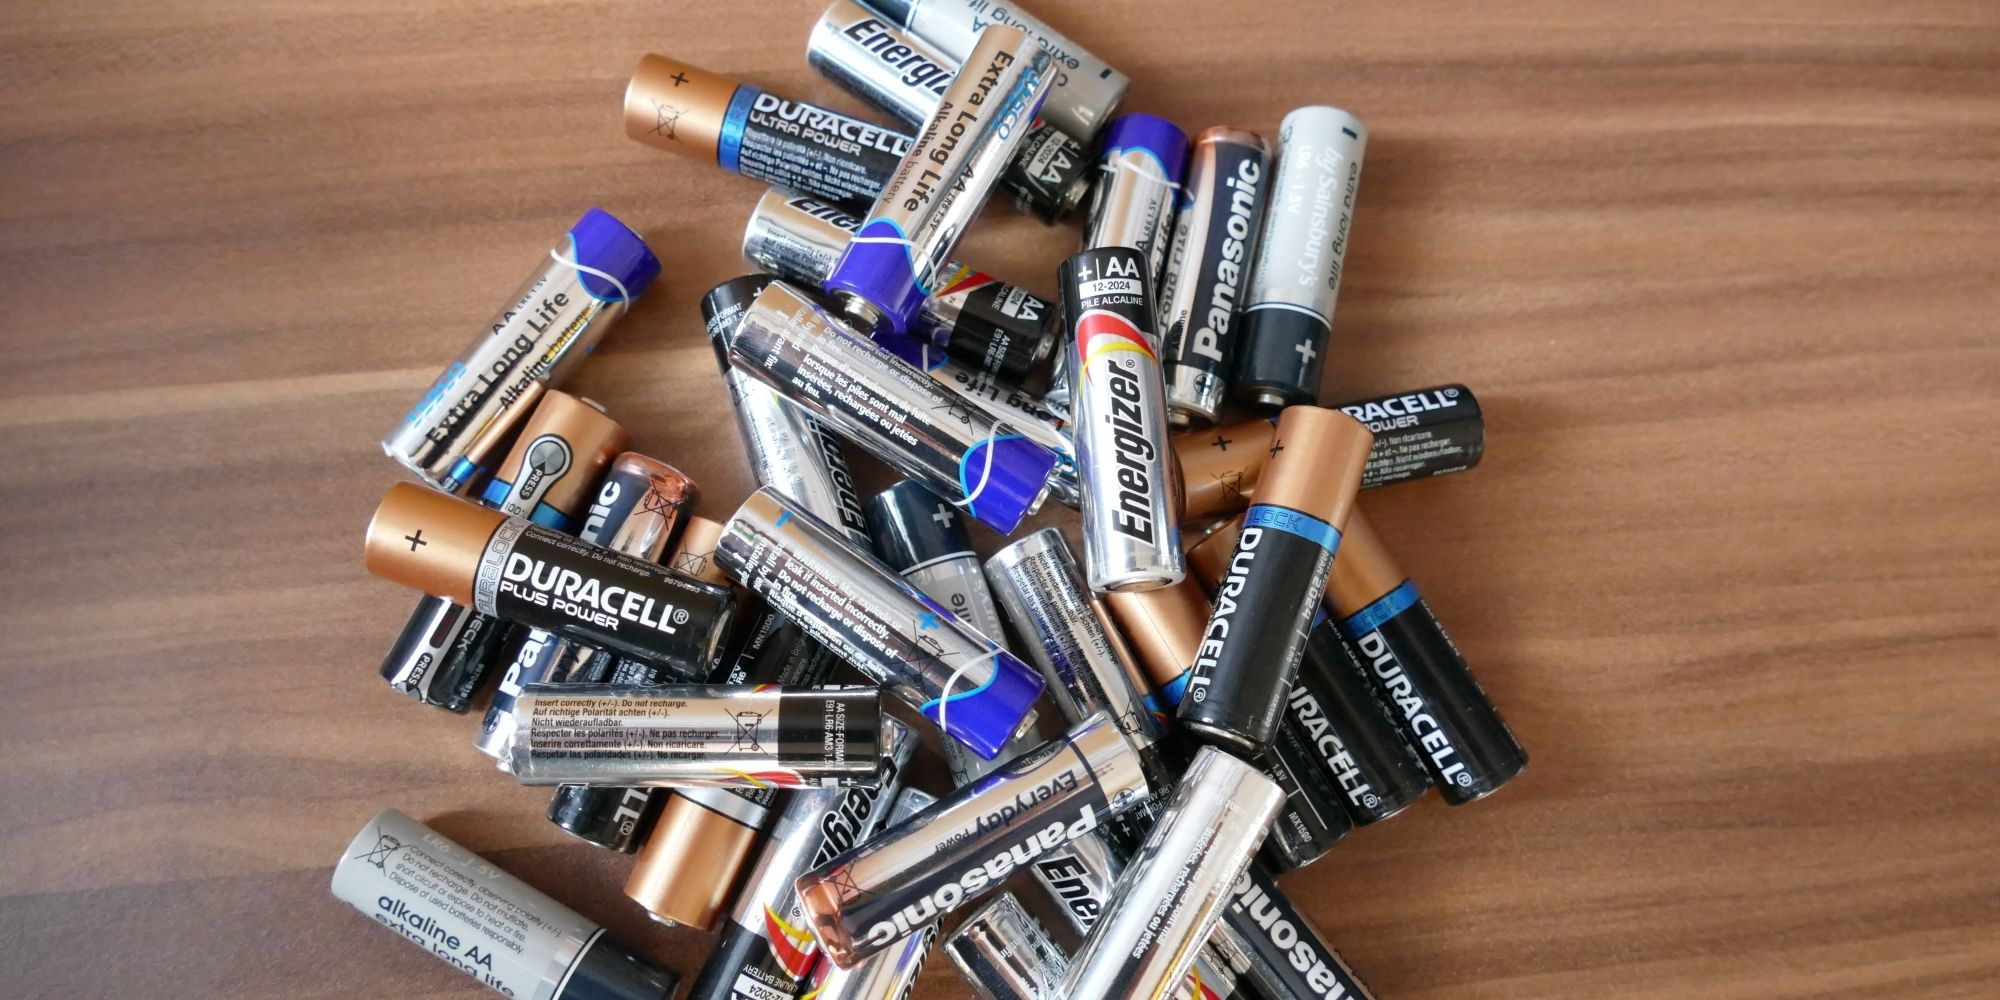 Battery Guide: What Are the Different Types of C batteries